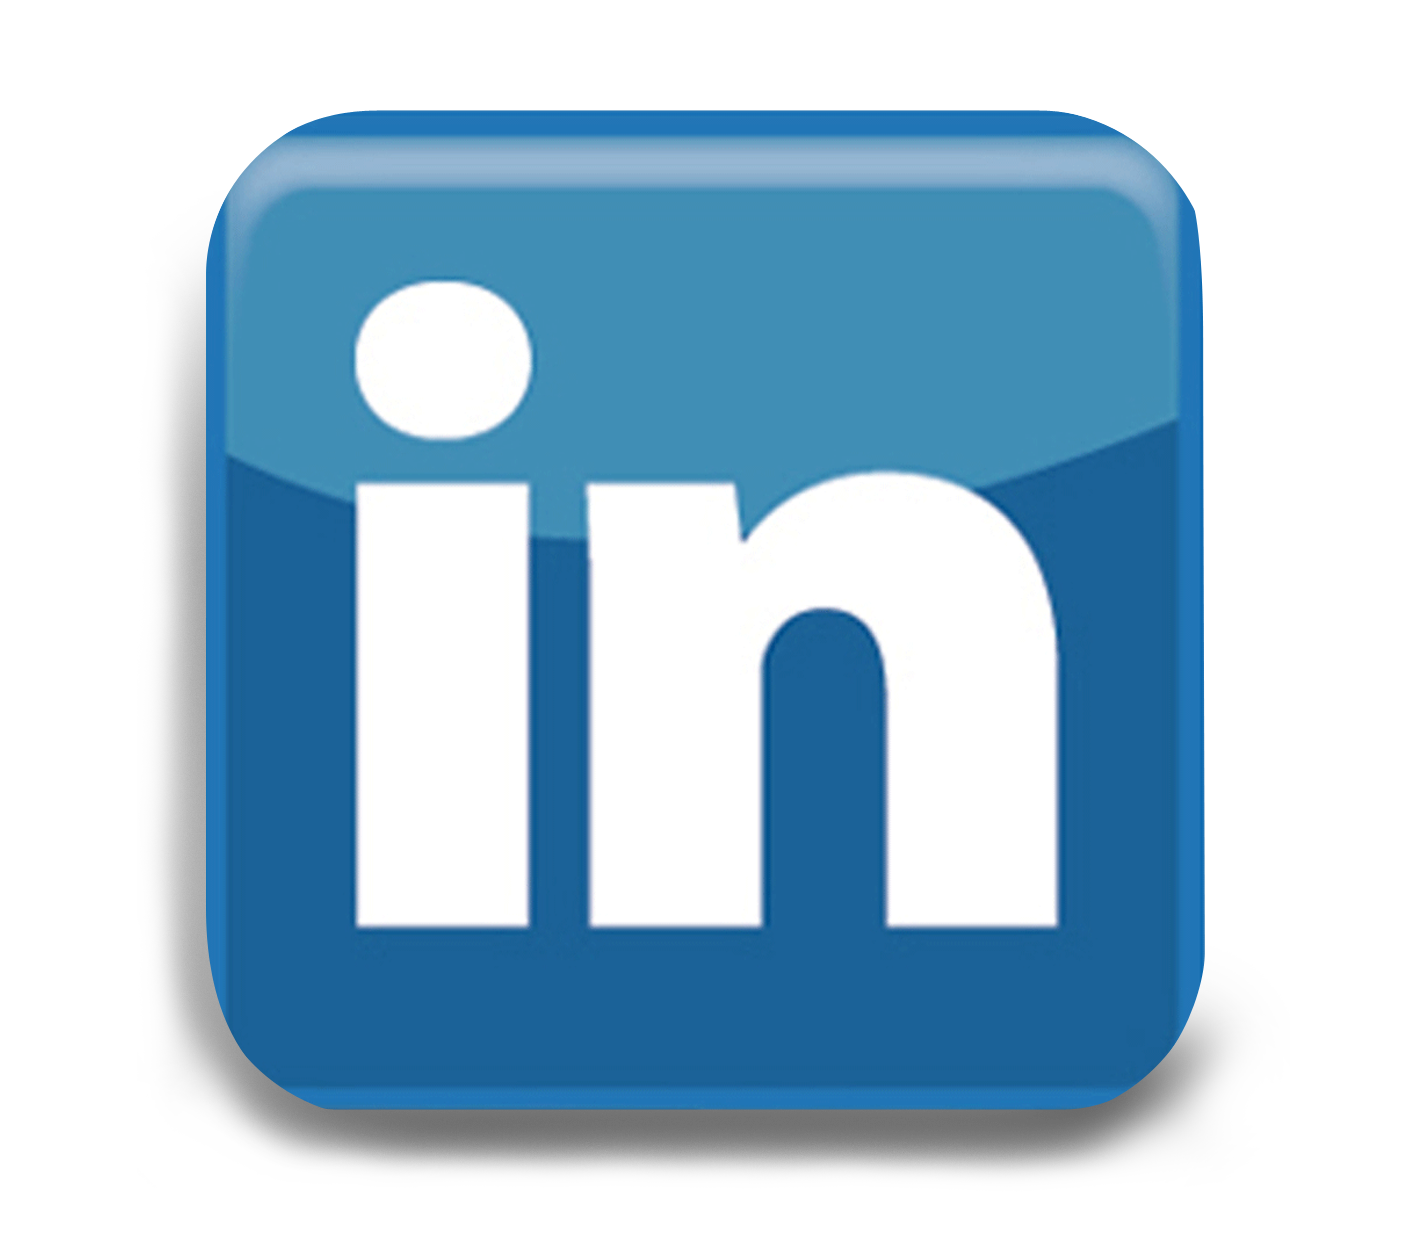 Linkedin In Logo Png 1826 Free Transparent Png Logos